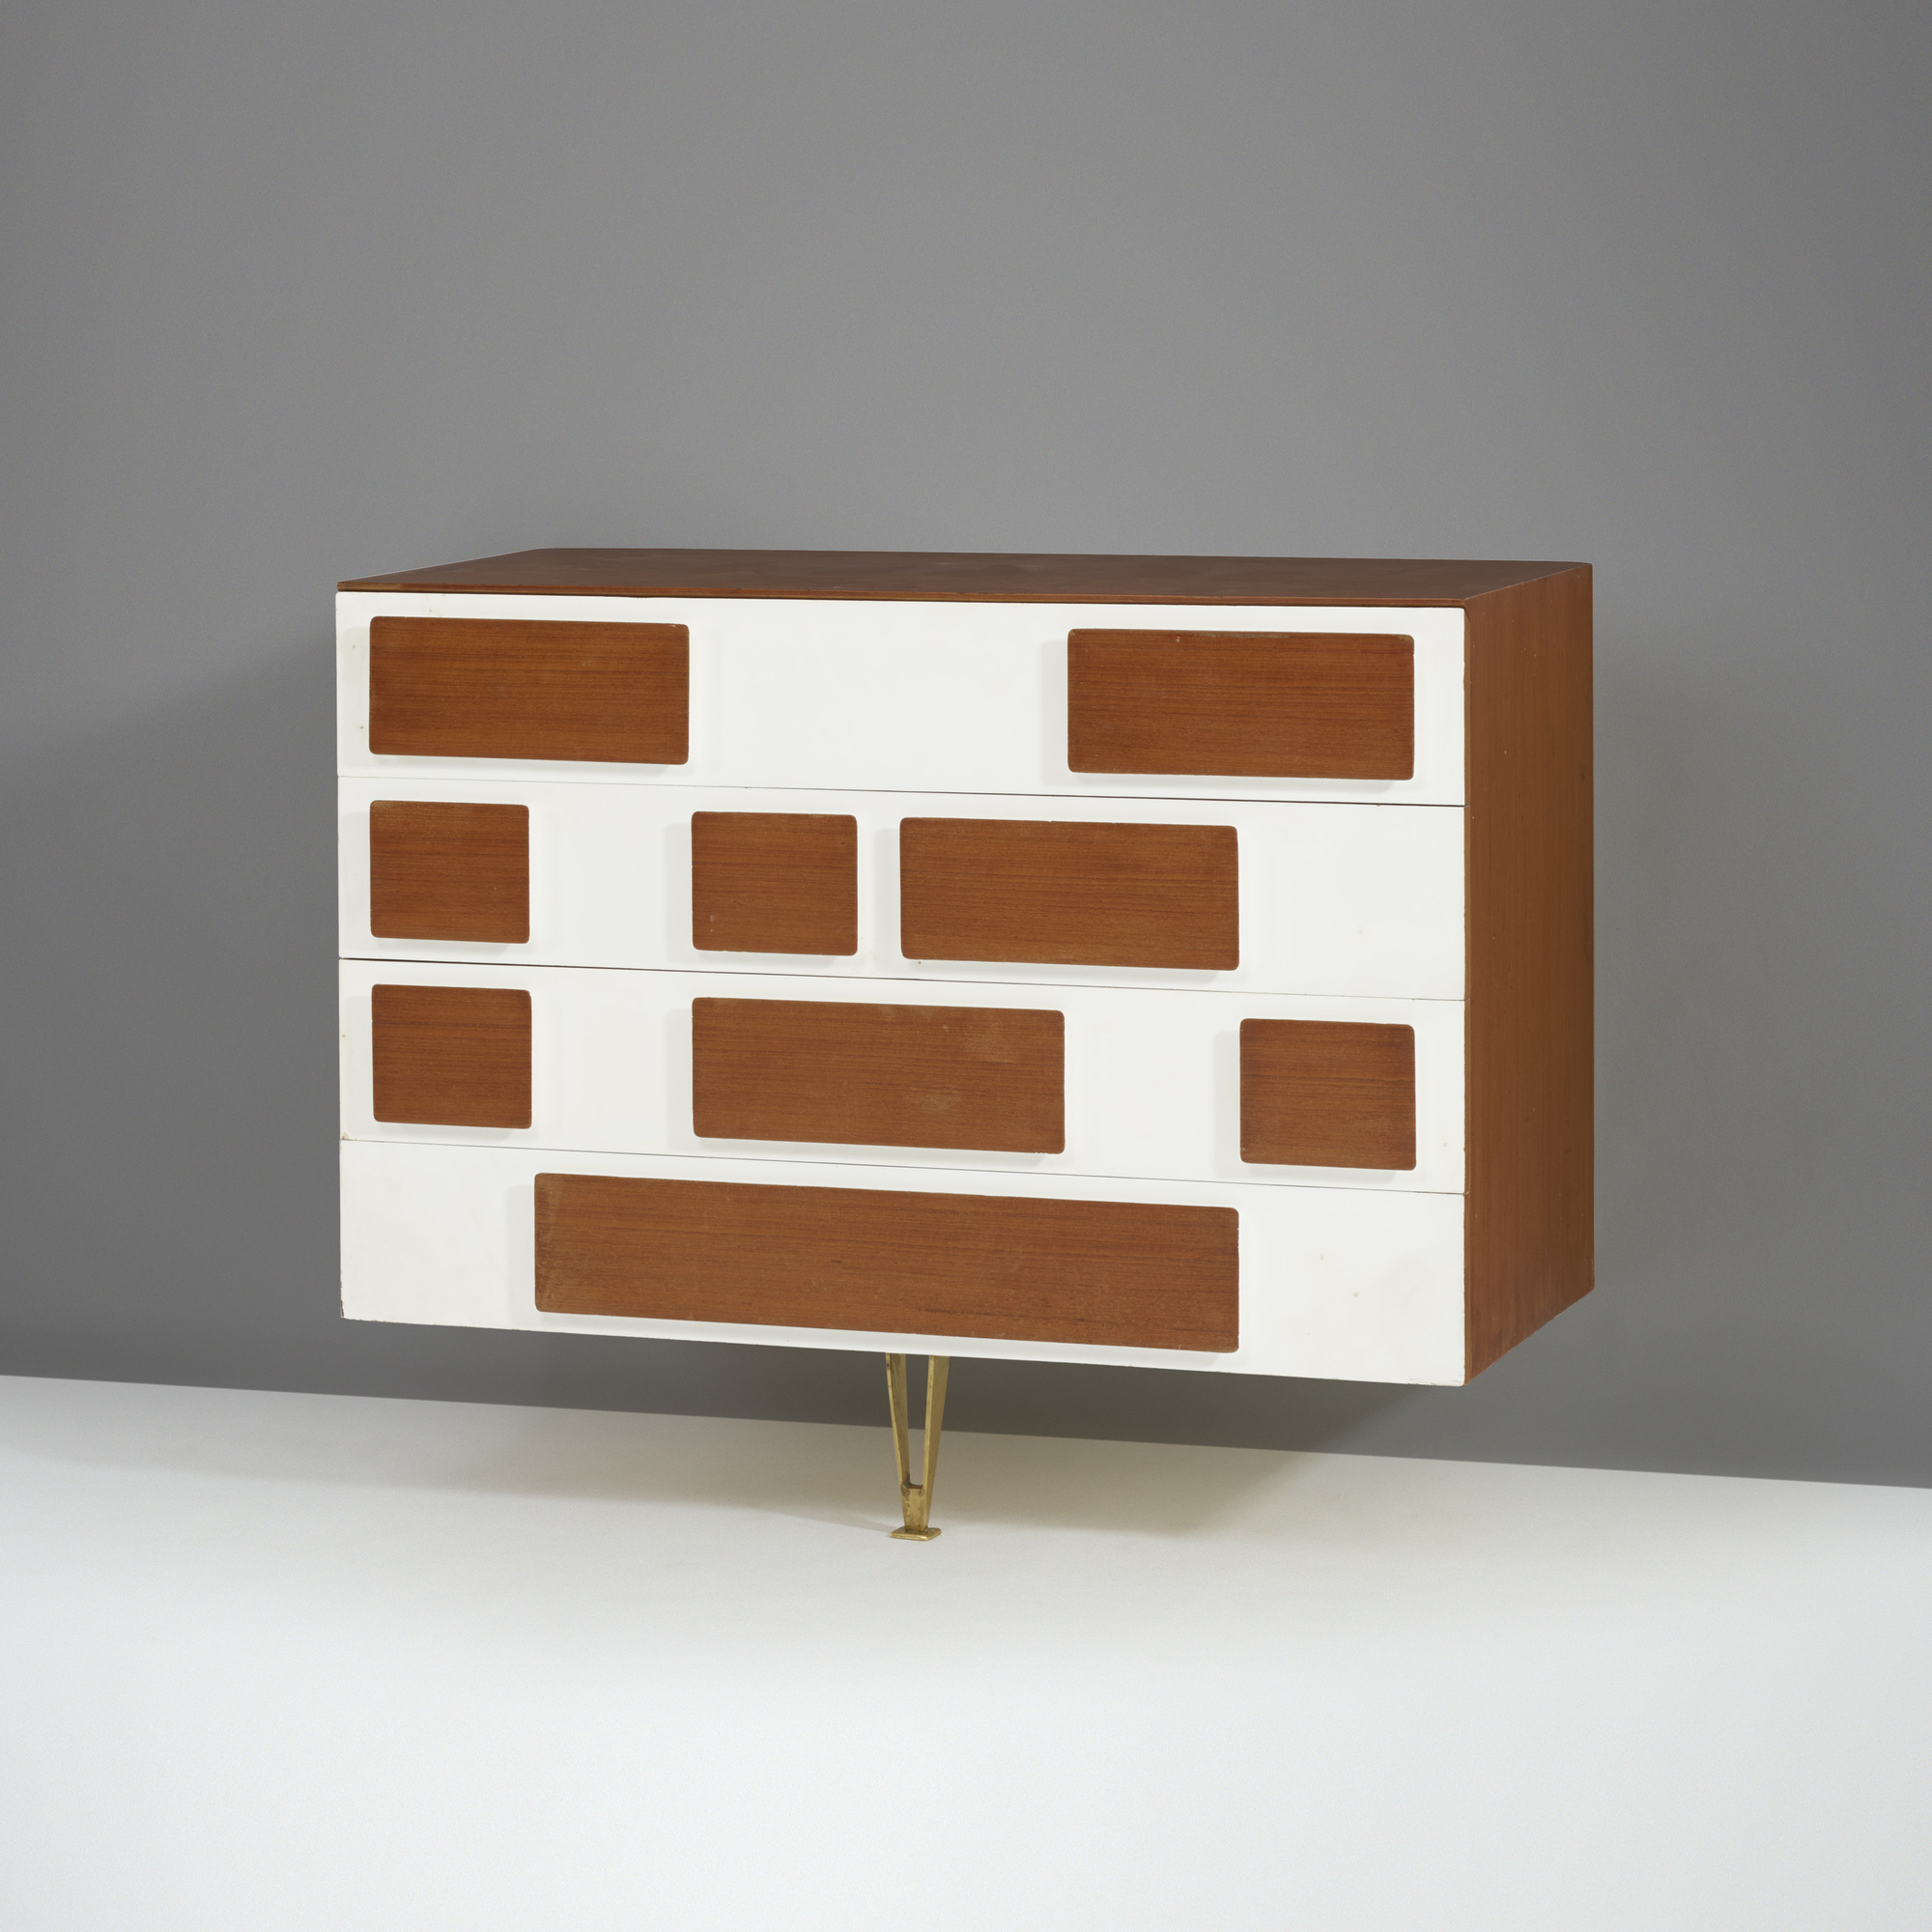 12: Gio Ponti / A Unique cabinet from Villa Arreaza, Caracas (1 of 3)